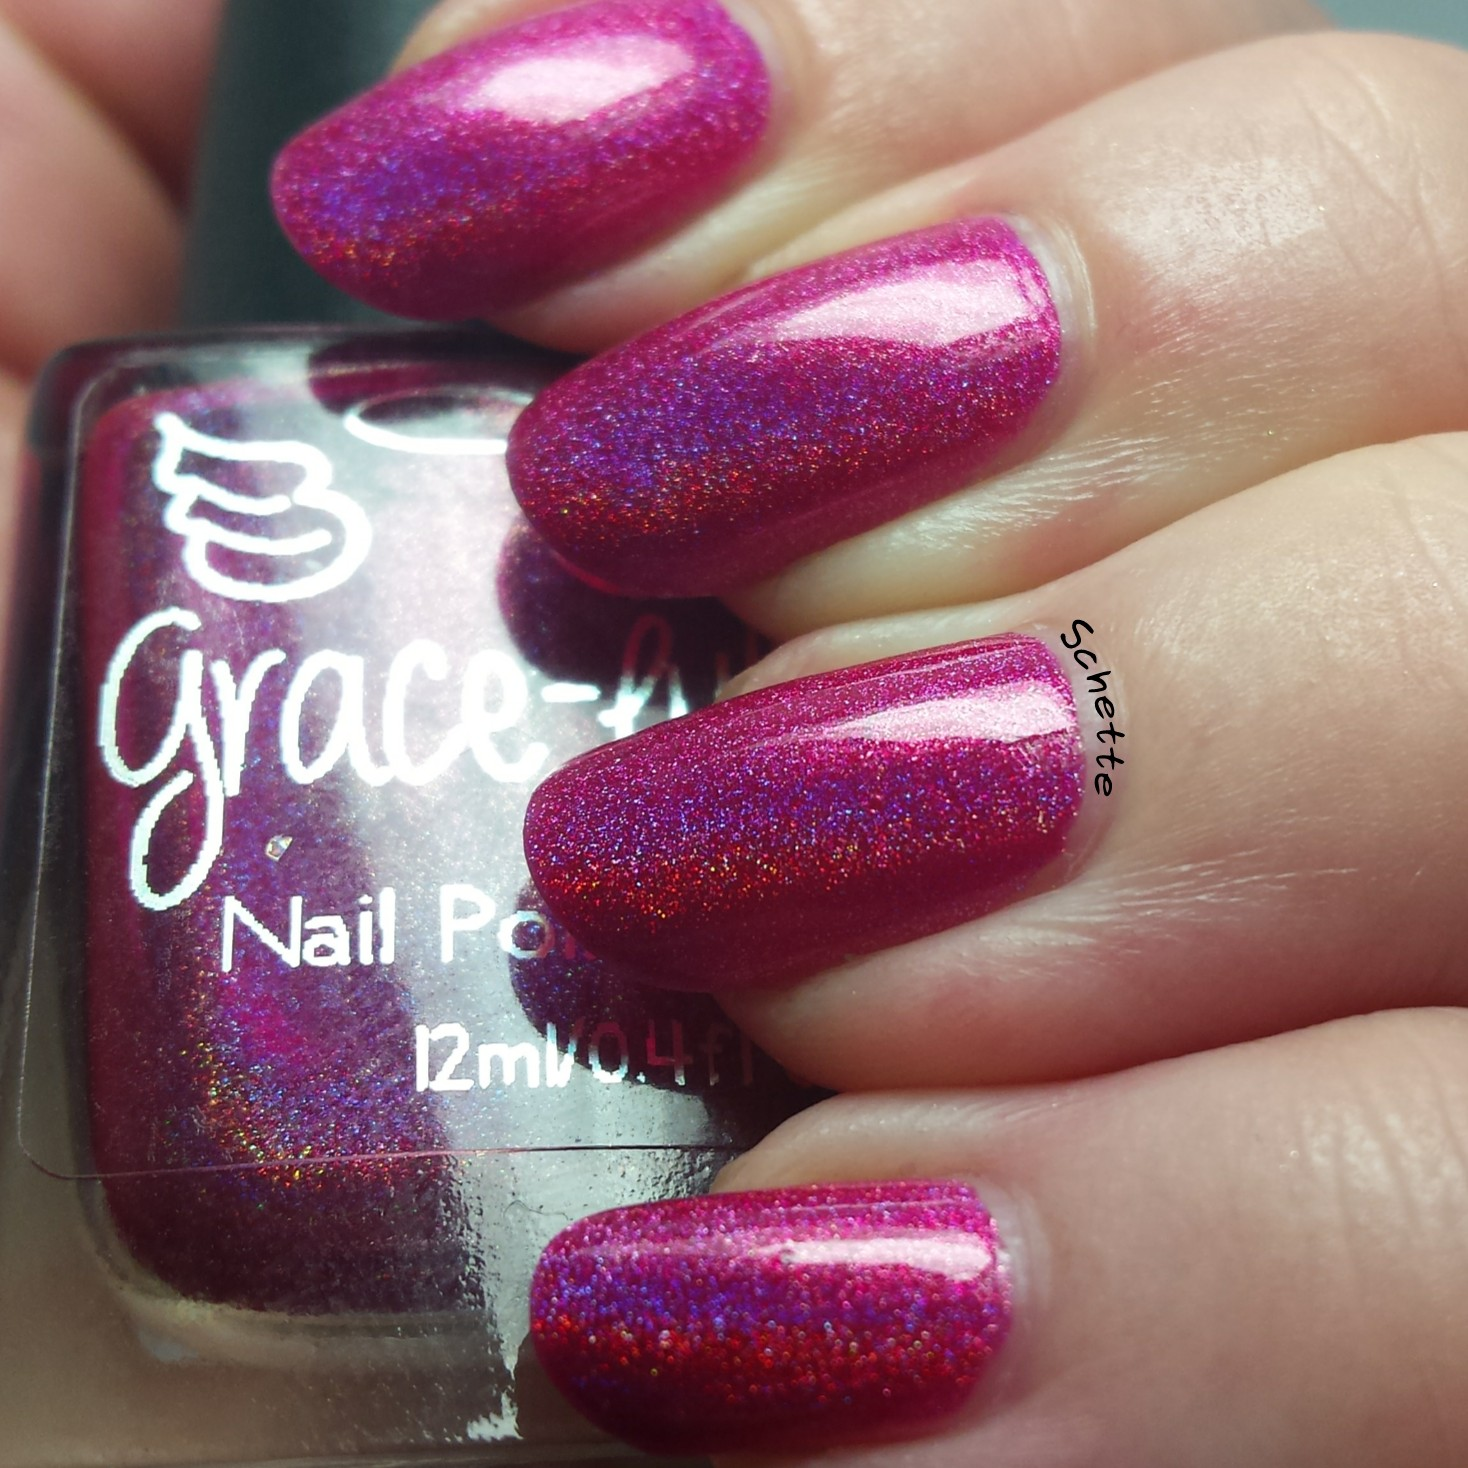 GraceFull Nai Polish - Kate